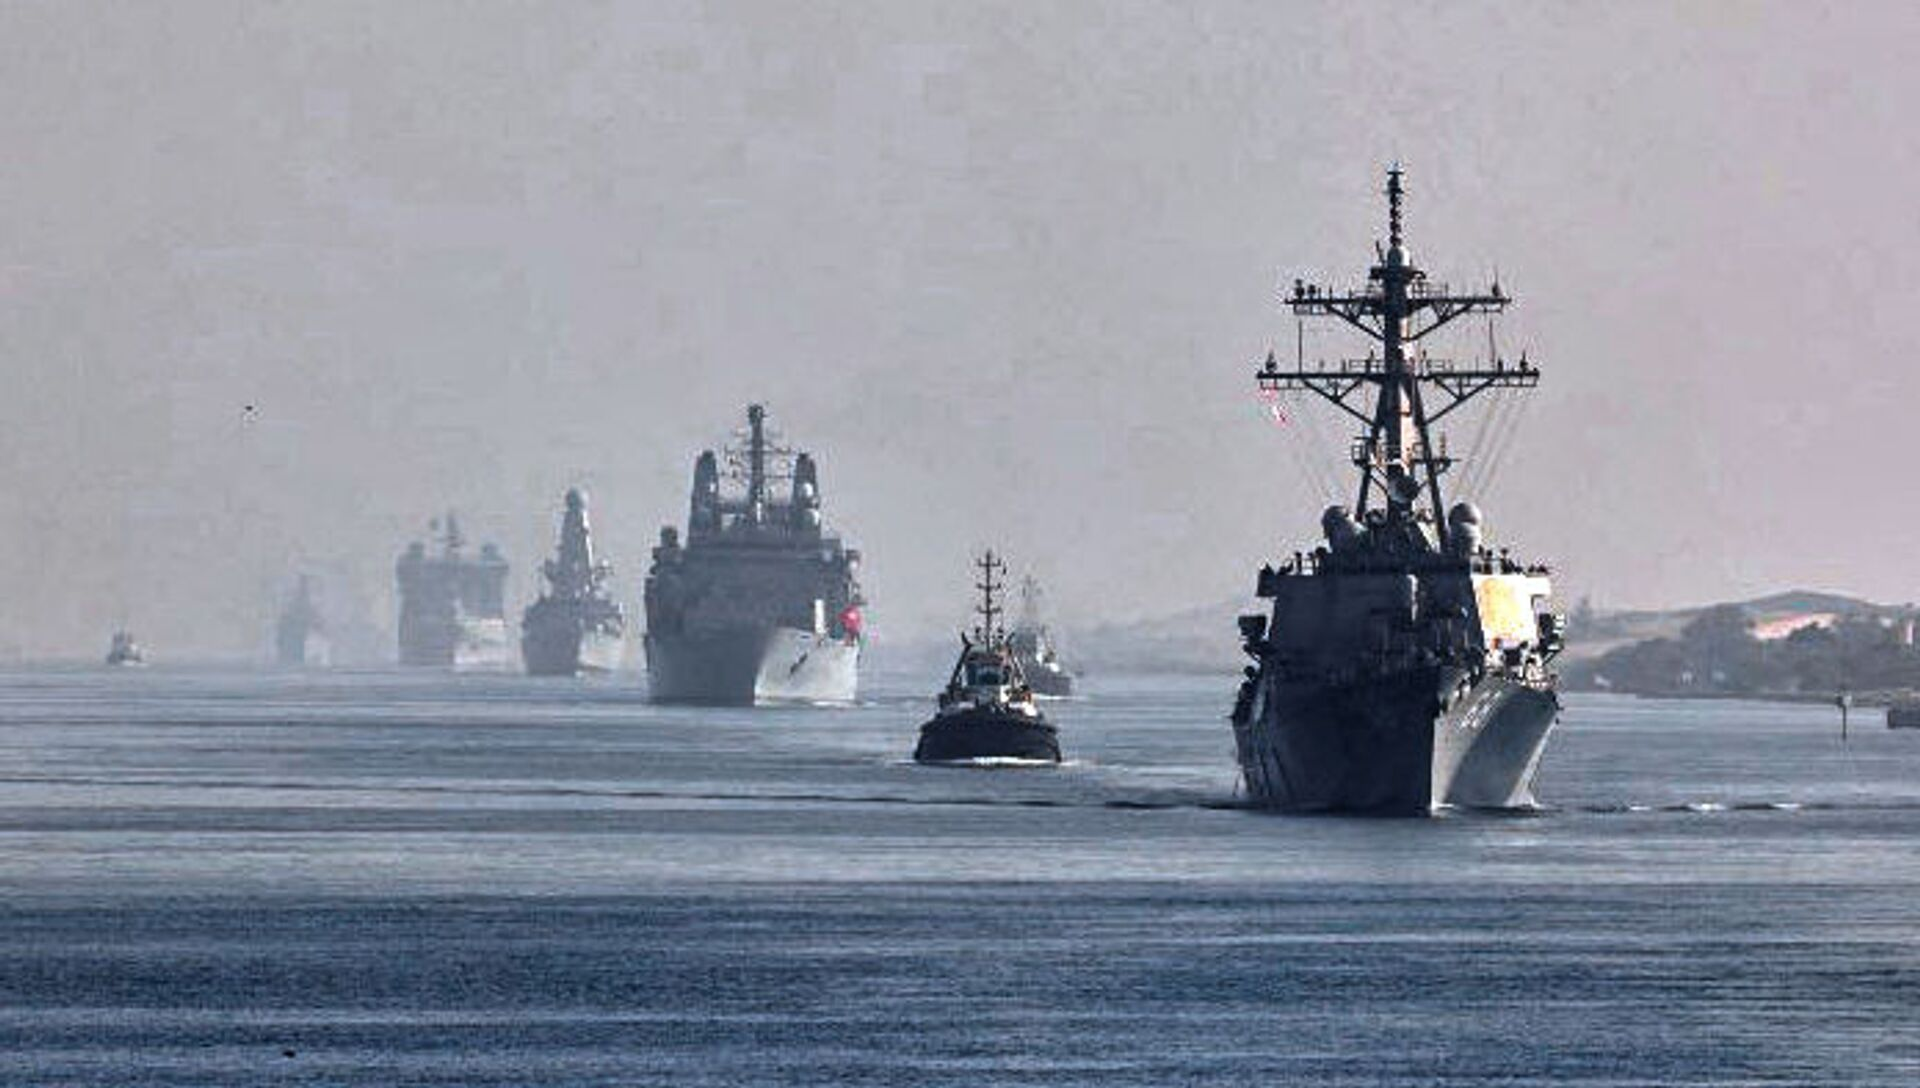 This handout image provided by the official Twitter account of Commodore Steve Moorhouse, Royal Navy, Commander of the UK Carrier Strike Group on July 6, 2021 shows a view of the vessels of the strike group sailing behind the Royal Navy's HMS Queen Elizabeth aircraft carrier through Egypt's Suez Canal. - Sputnik International, 1920, 24.07.2021